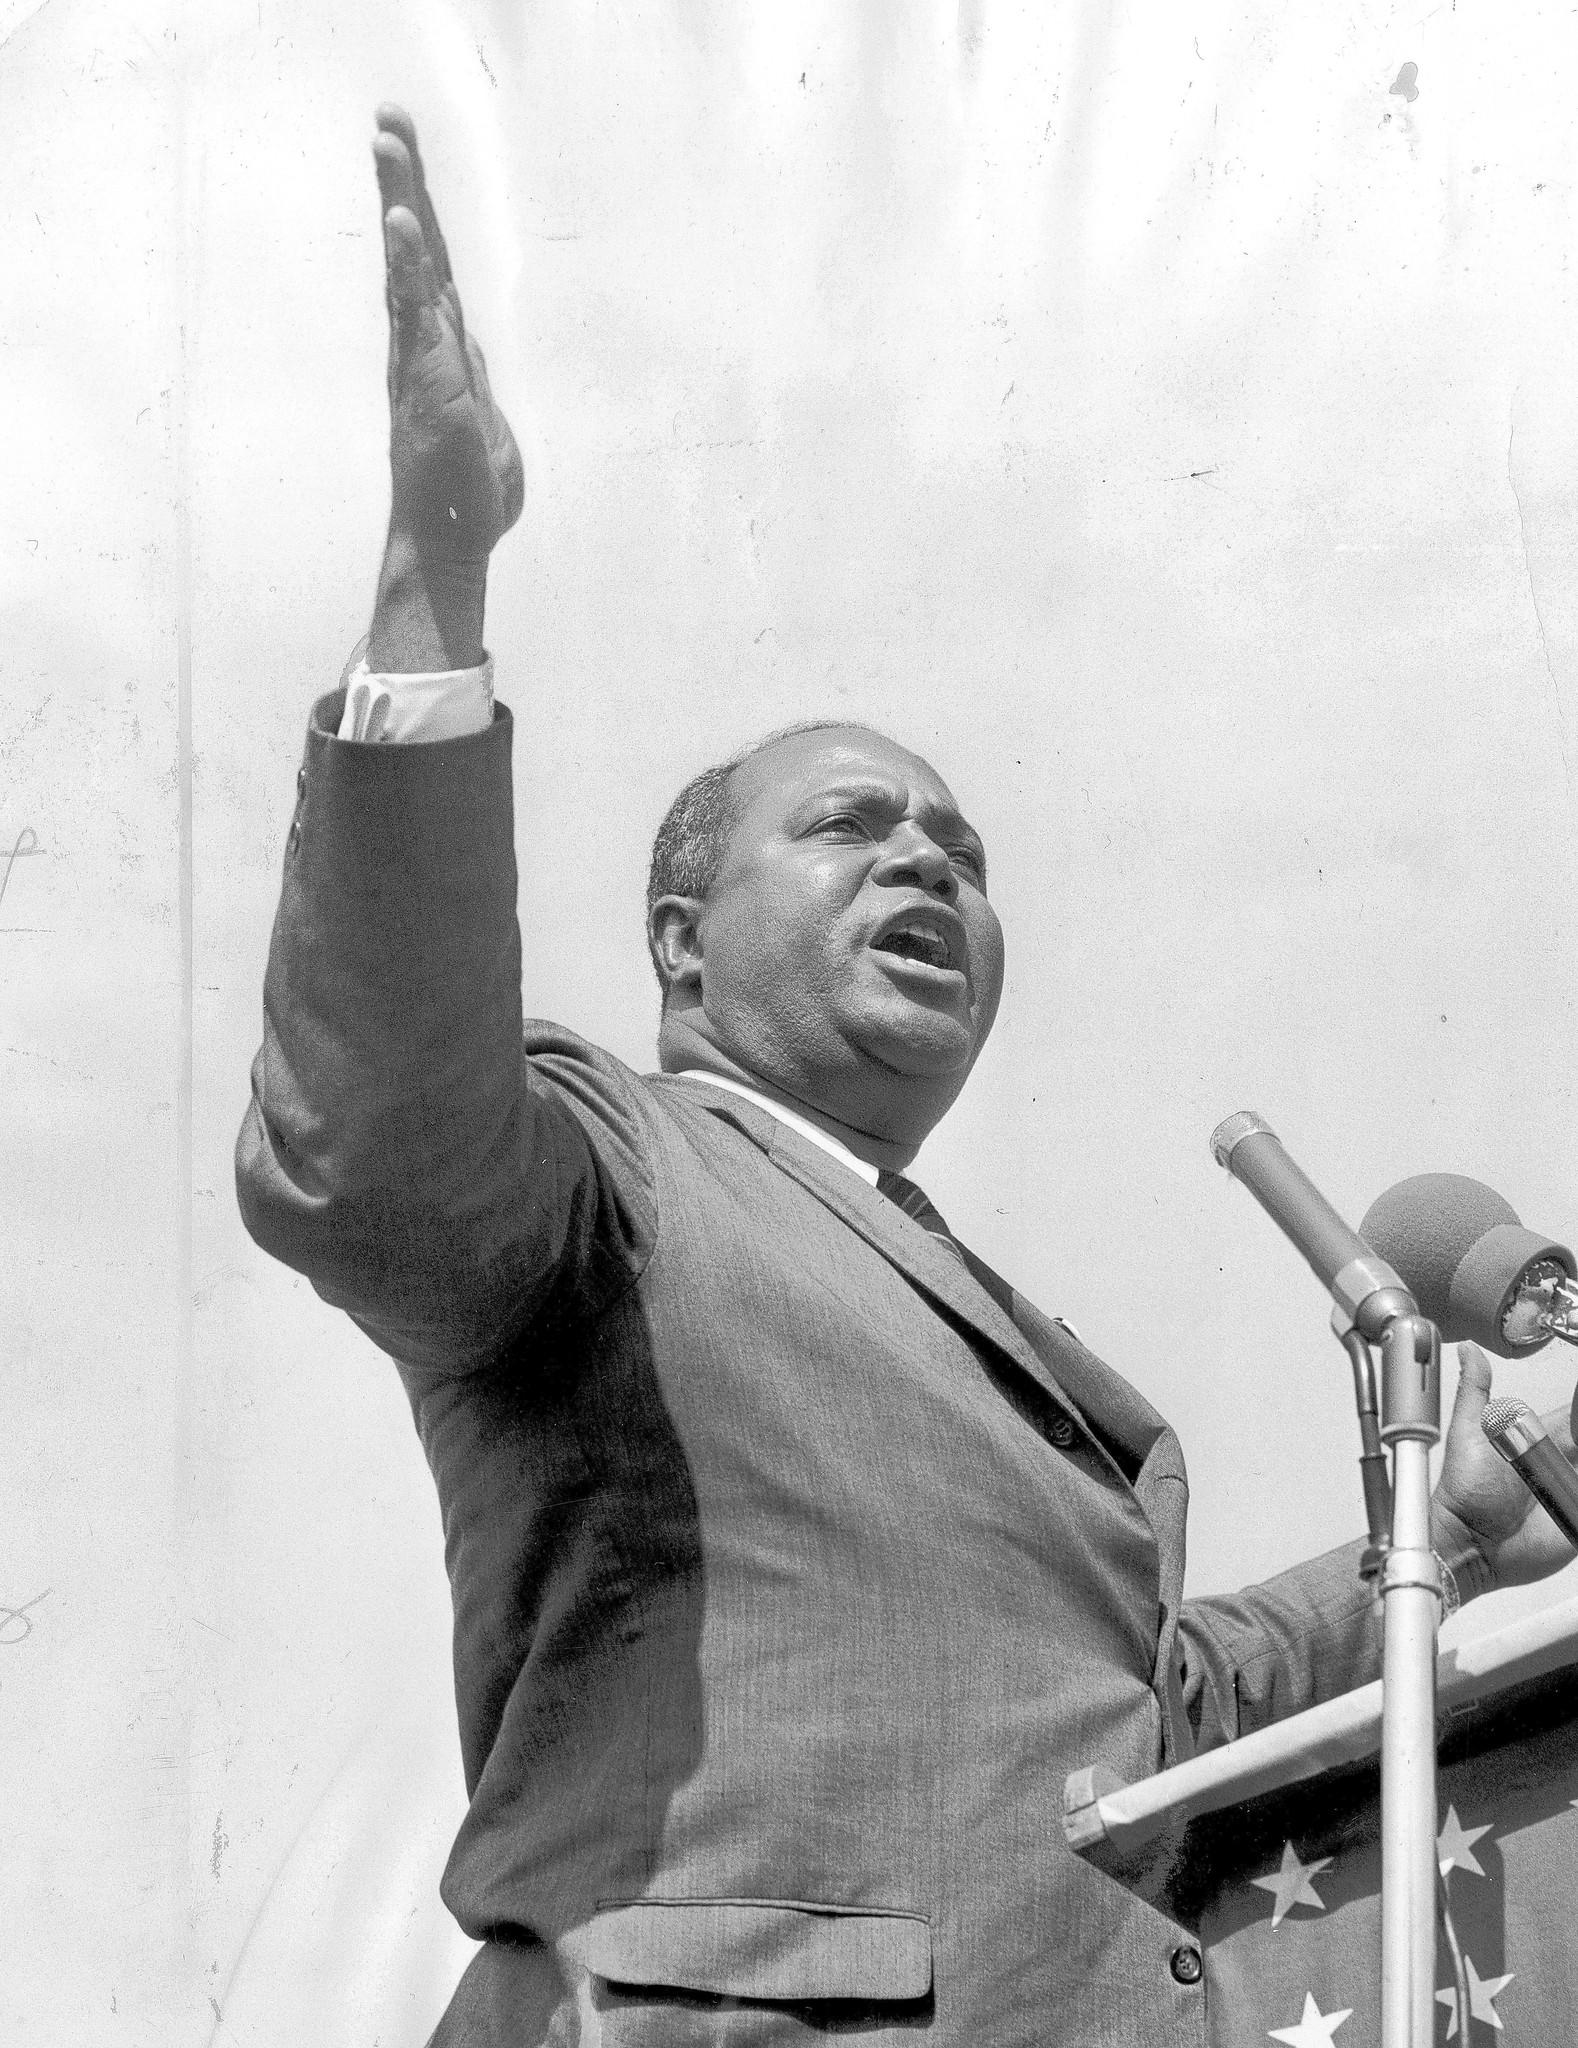 James Farmer, of the Congress of Racial Equality, speaks June 21, 1964, to more than 70,000 people at an Illinois Rally for Civil Rights event at Chicago's Soldier Field.